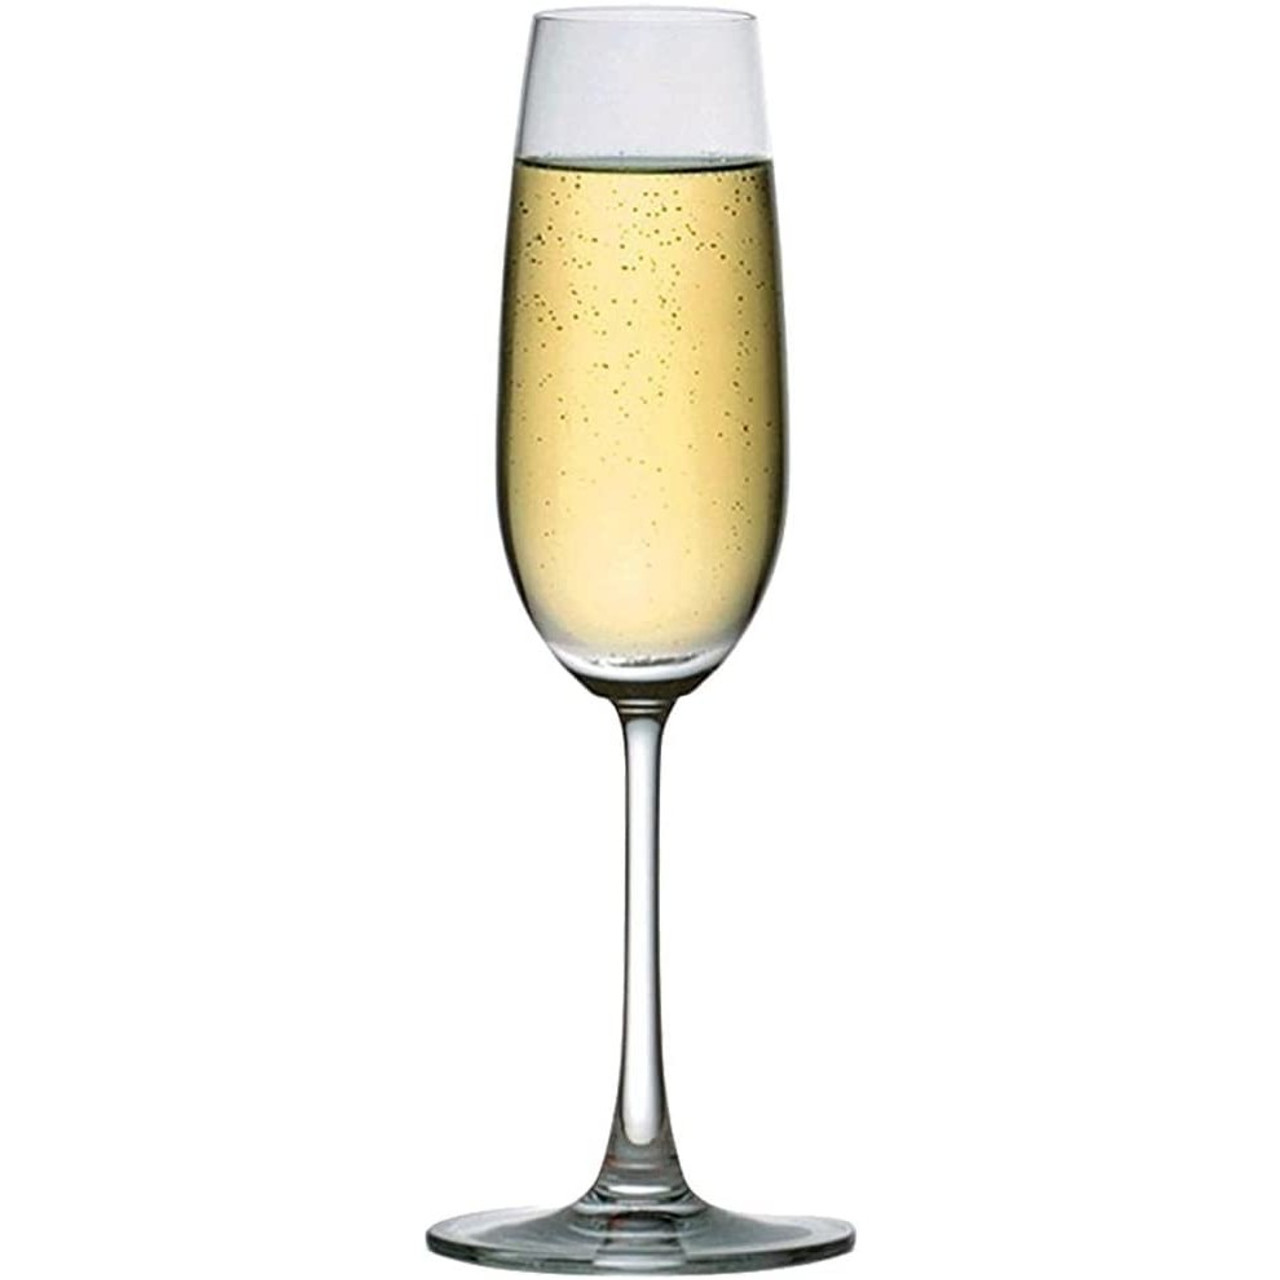 ECO WINE GLASS - CHAMPAGNE